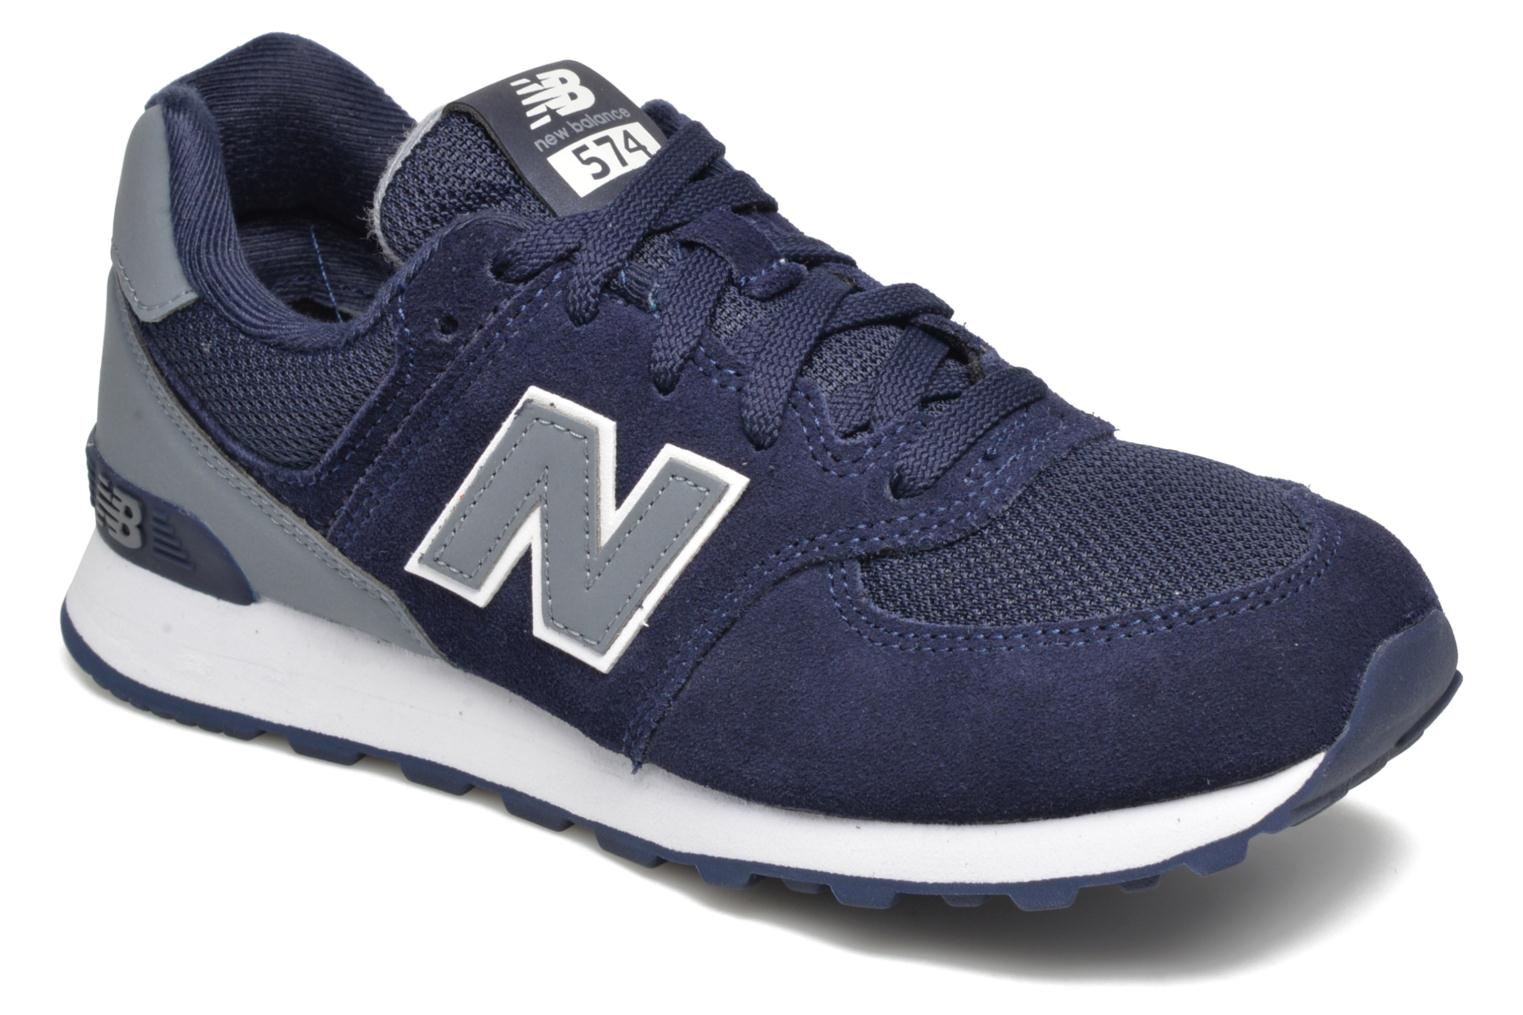 KL574 J CWP CWG Navy/Grey